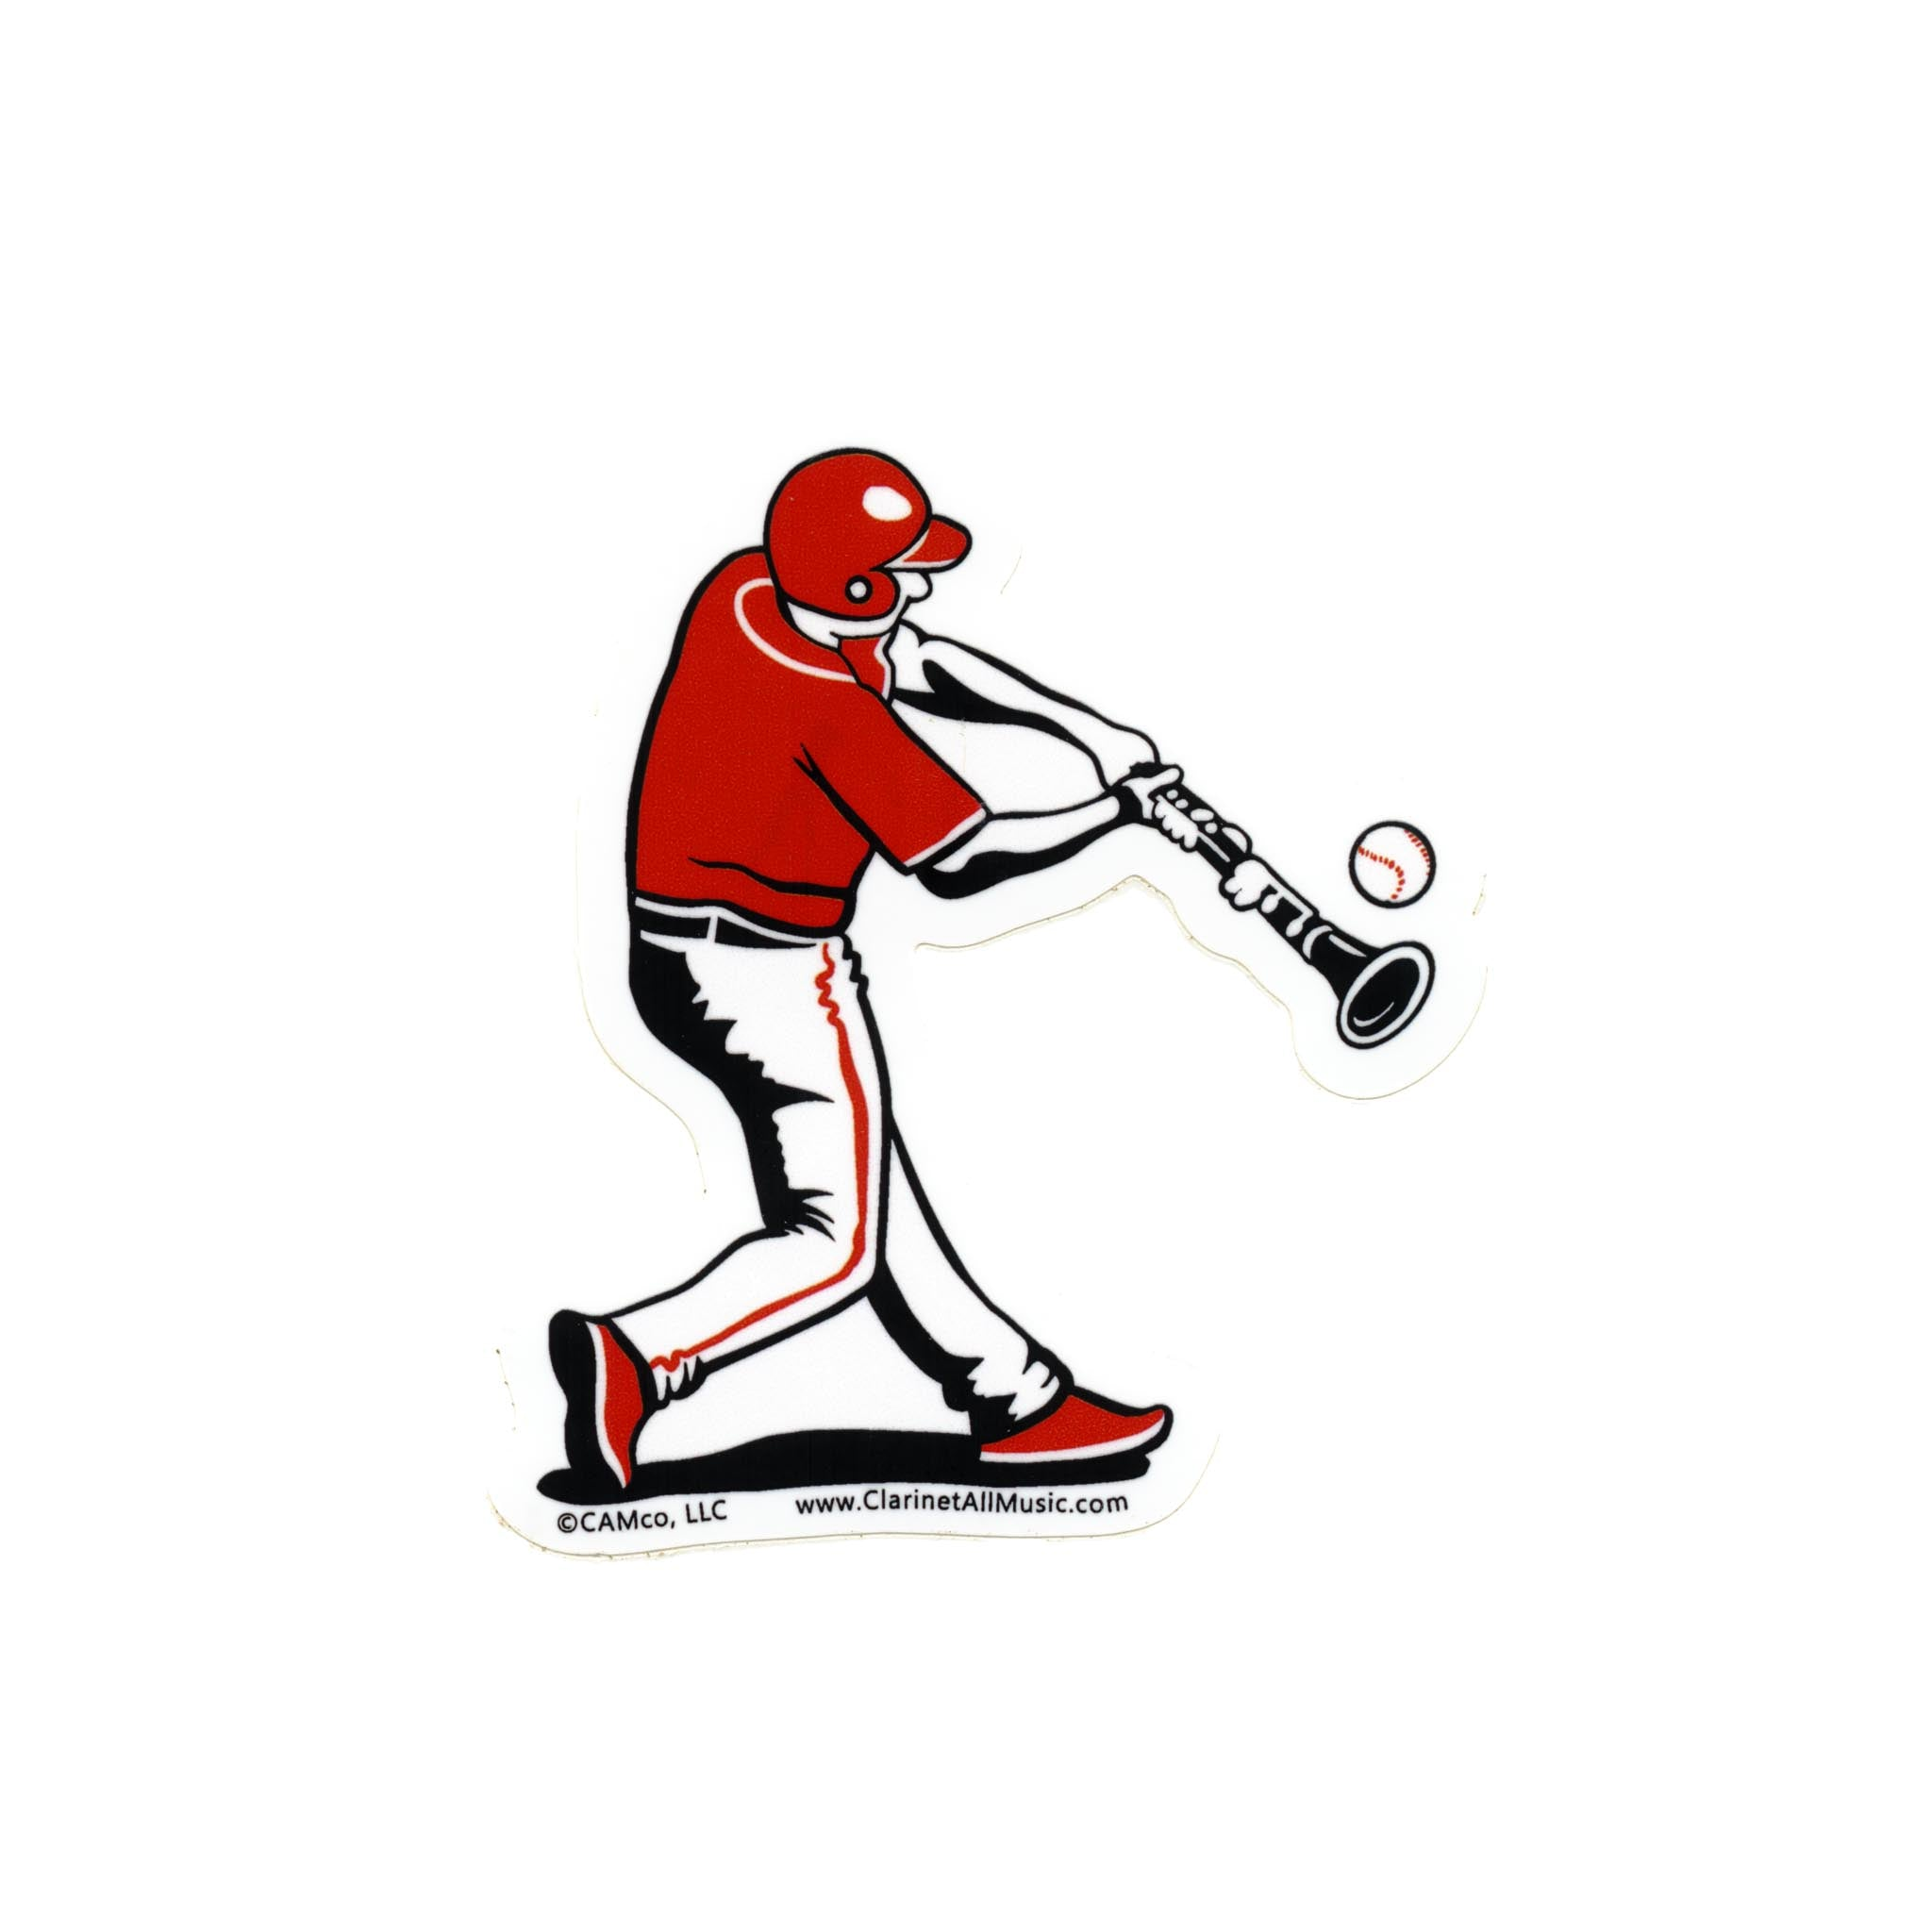 Clarinet Baseball batter vinyl sticker